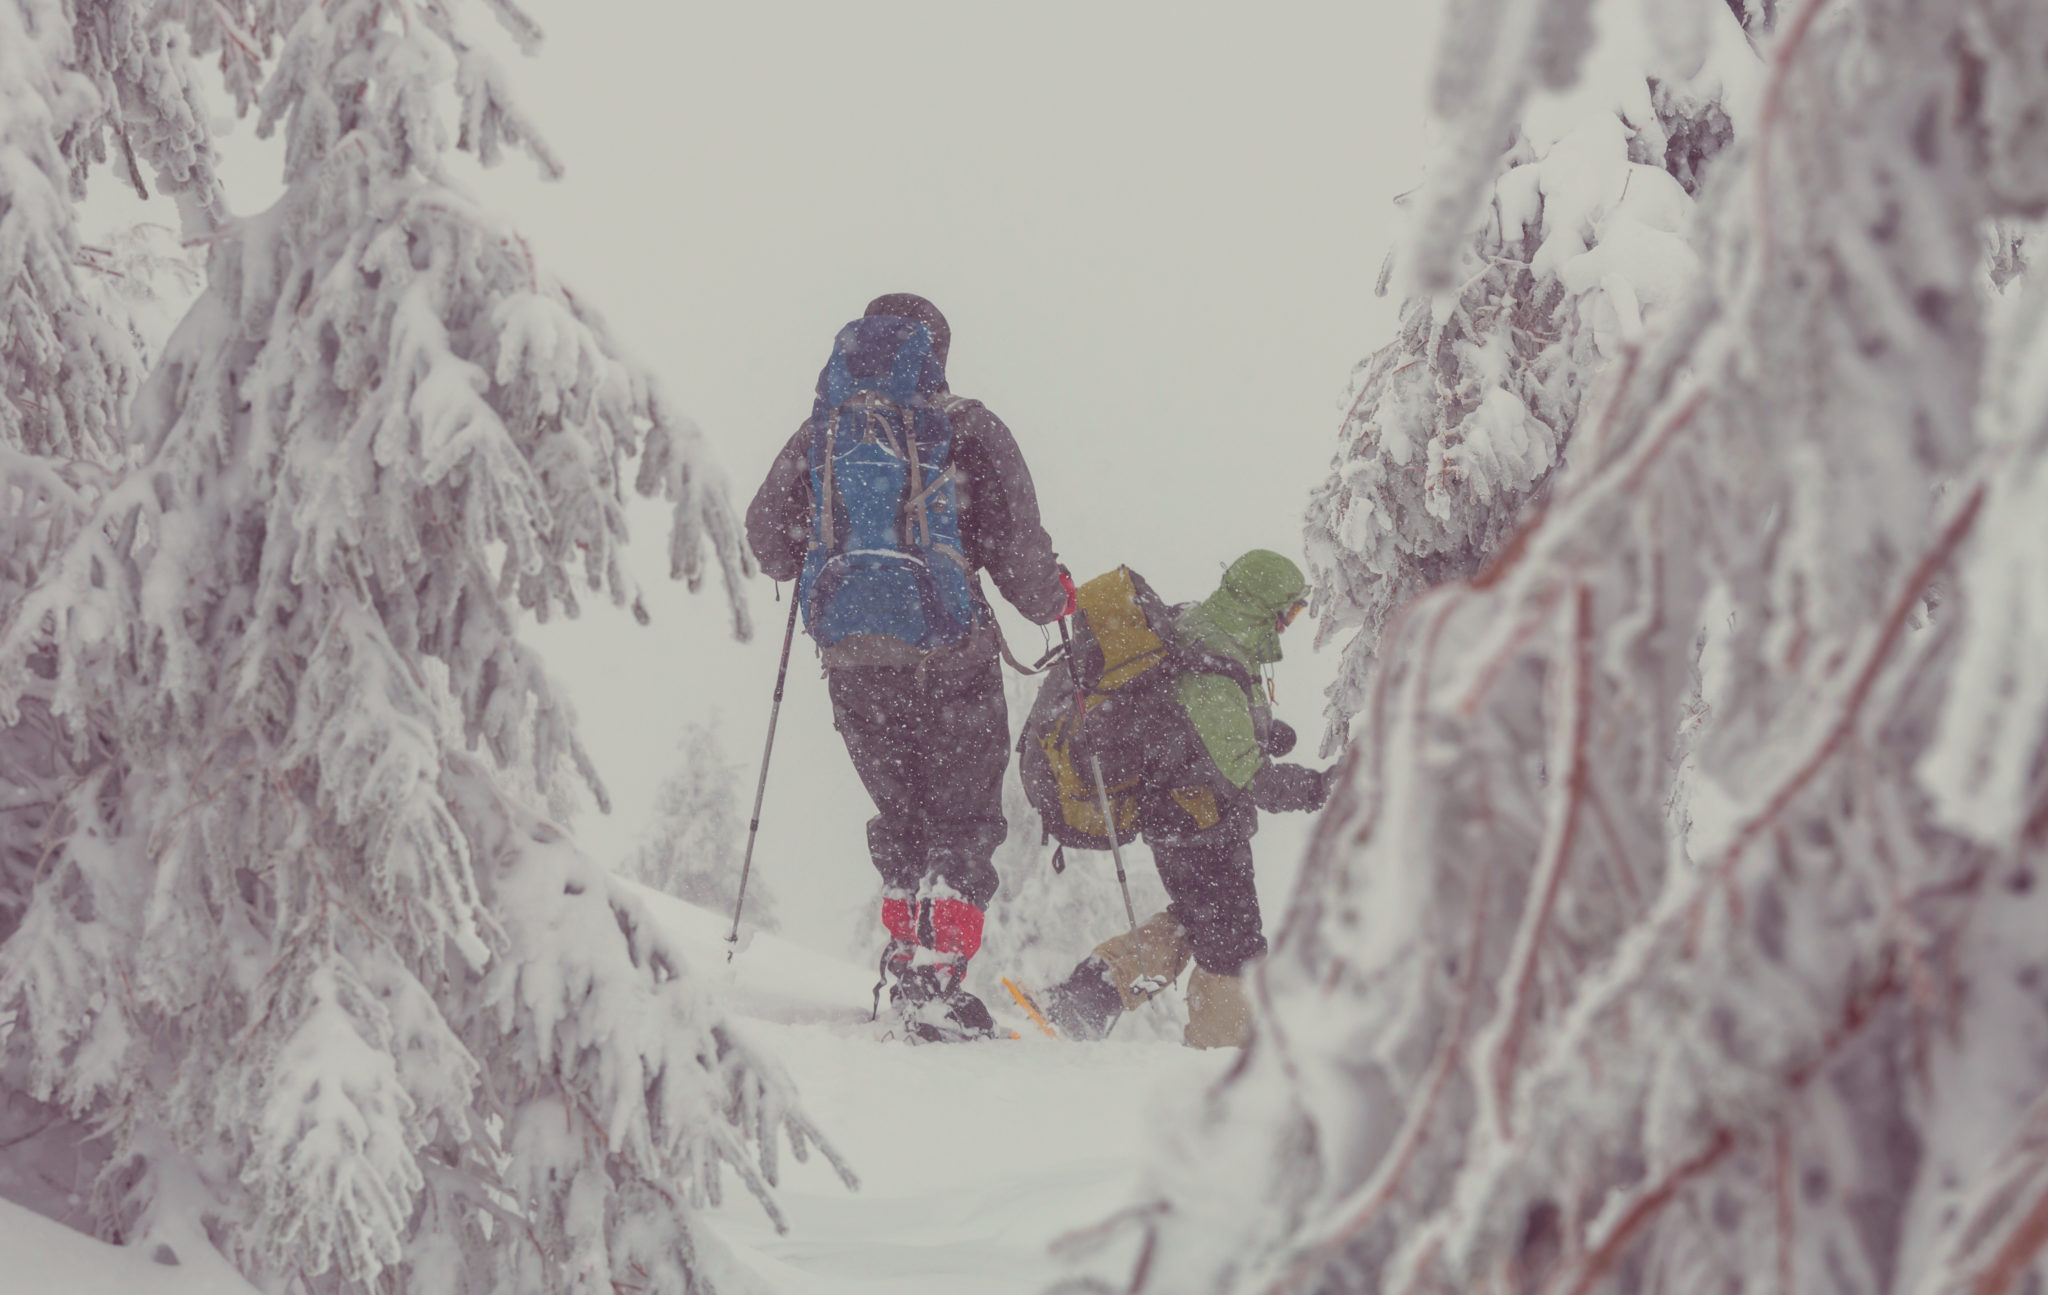 Snowshoeing - day and evening tours